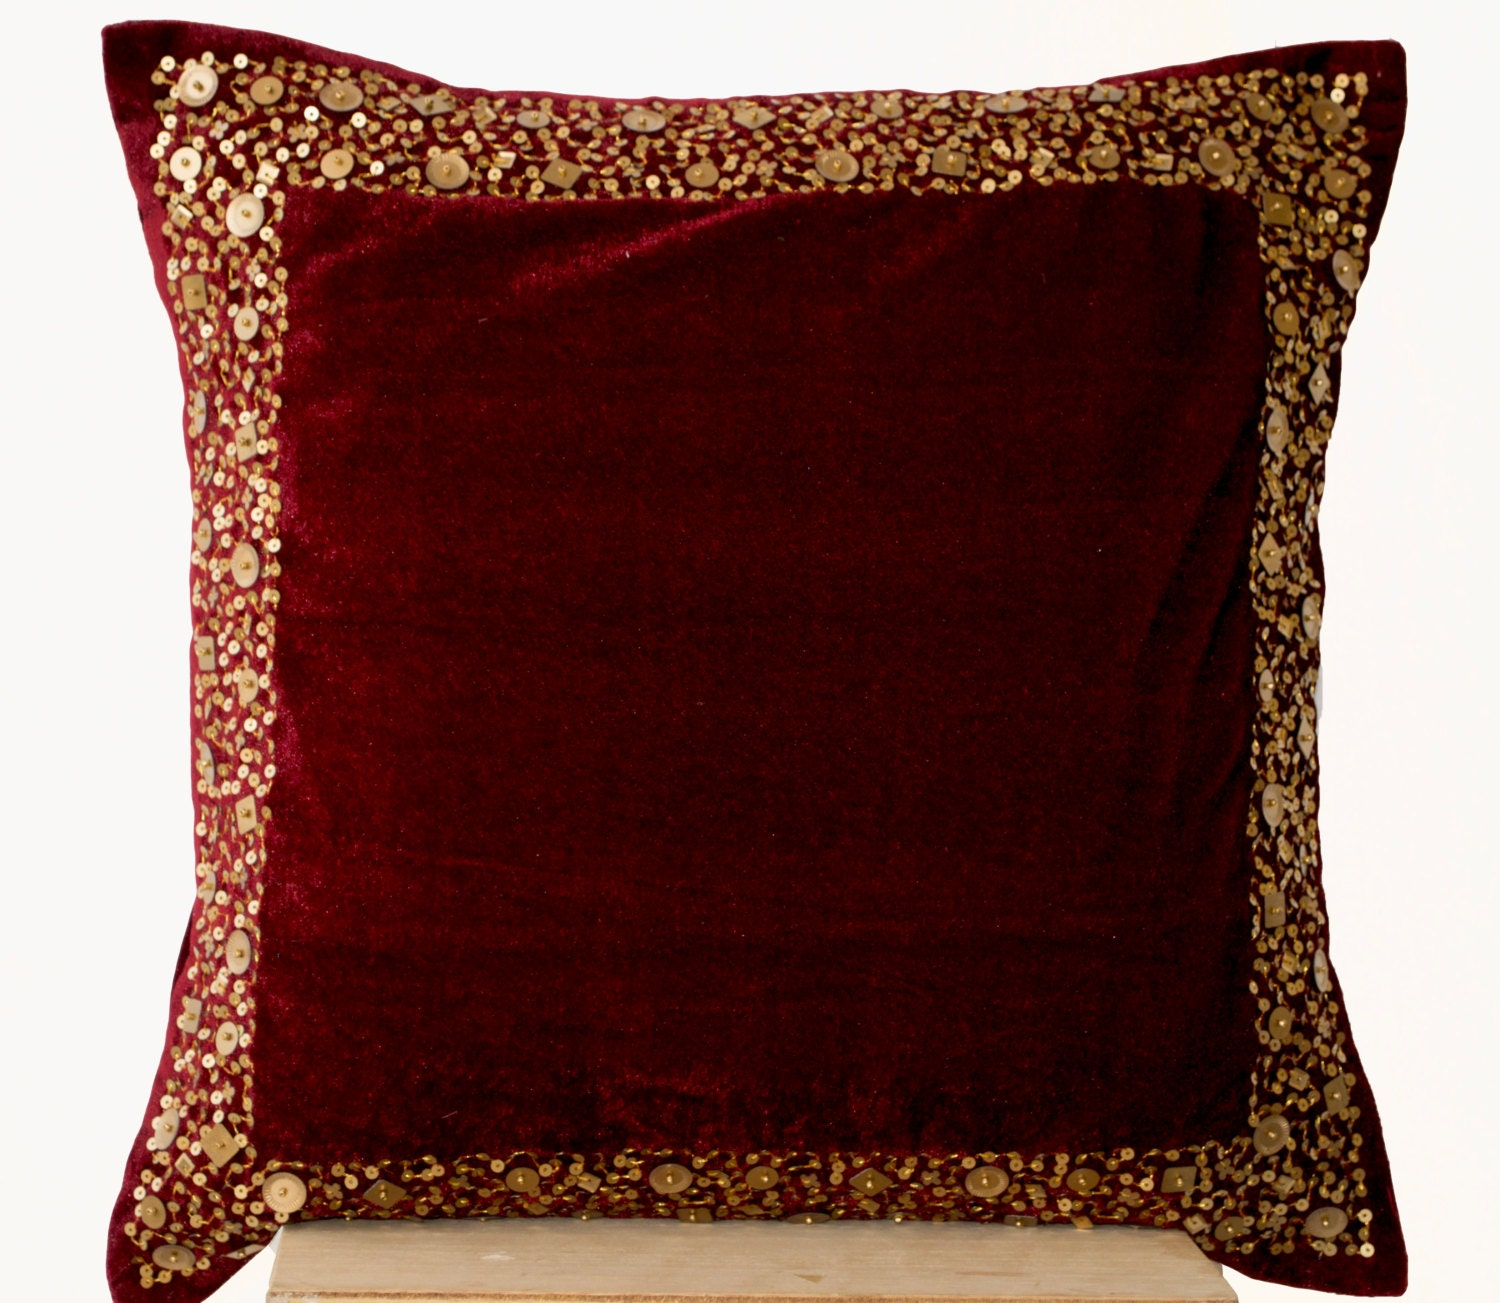 Throw Pillows Velvet : Velvet Throw Pillow Maroon Velvet cushion with gold sequin